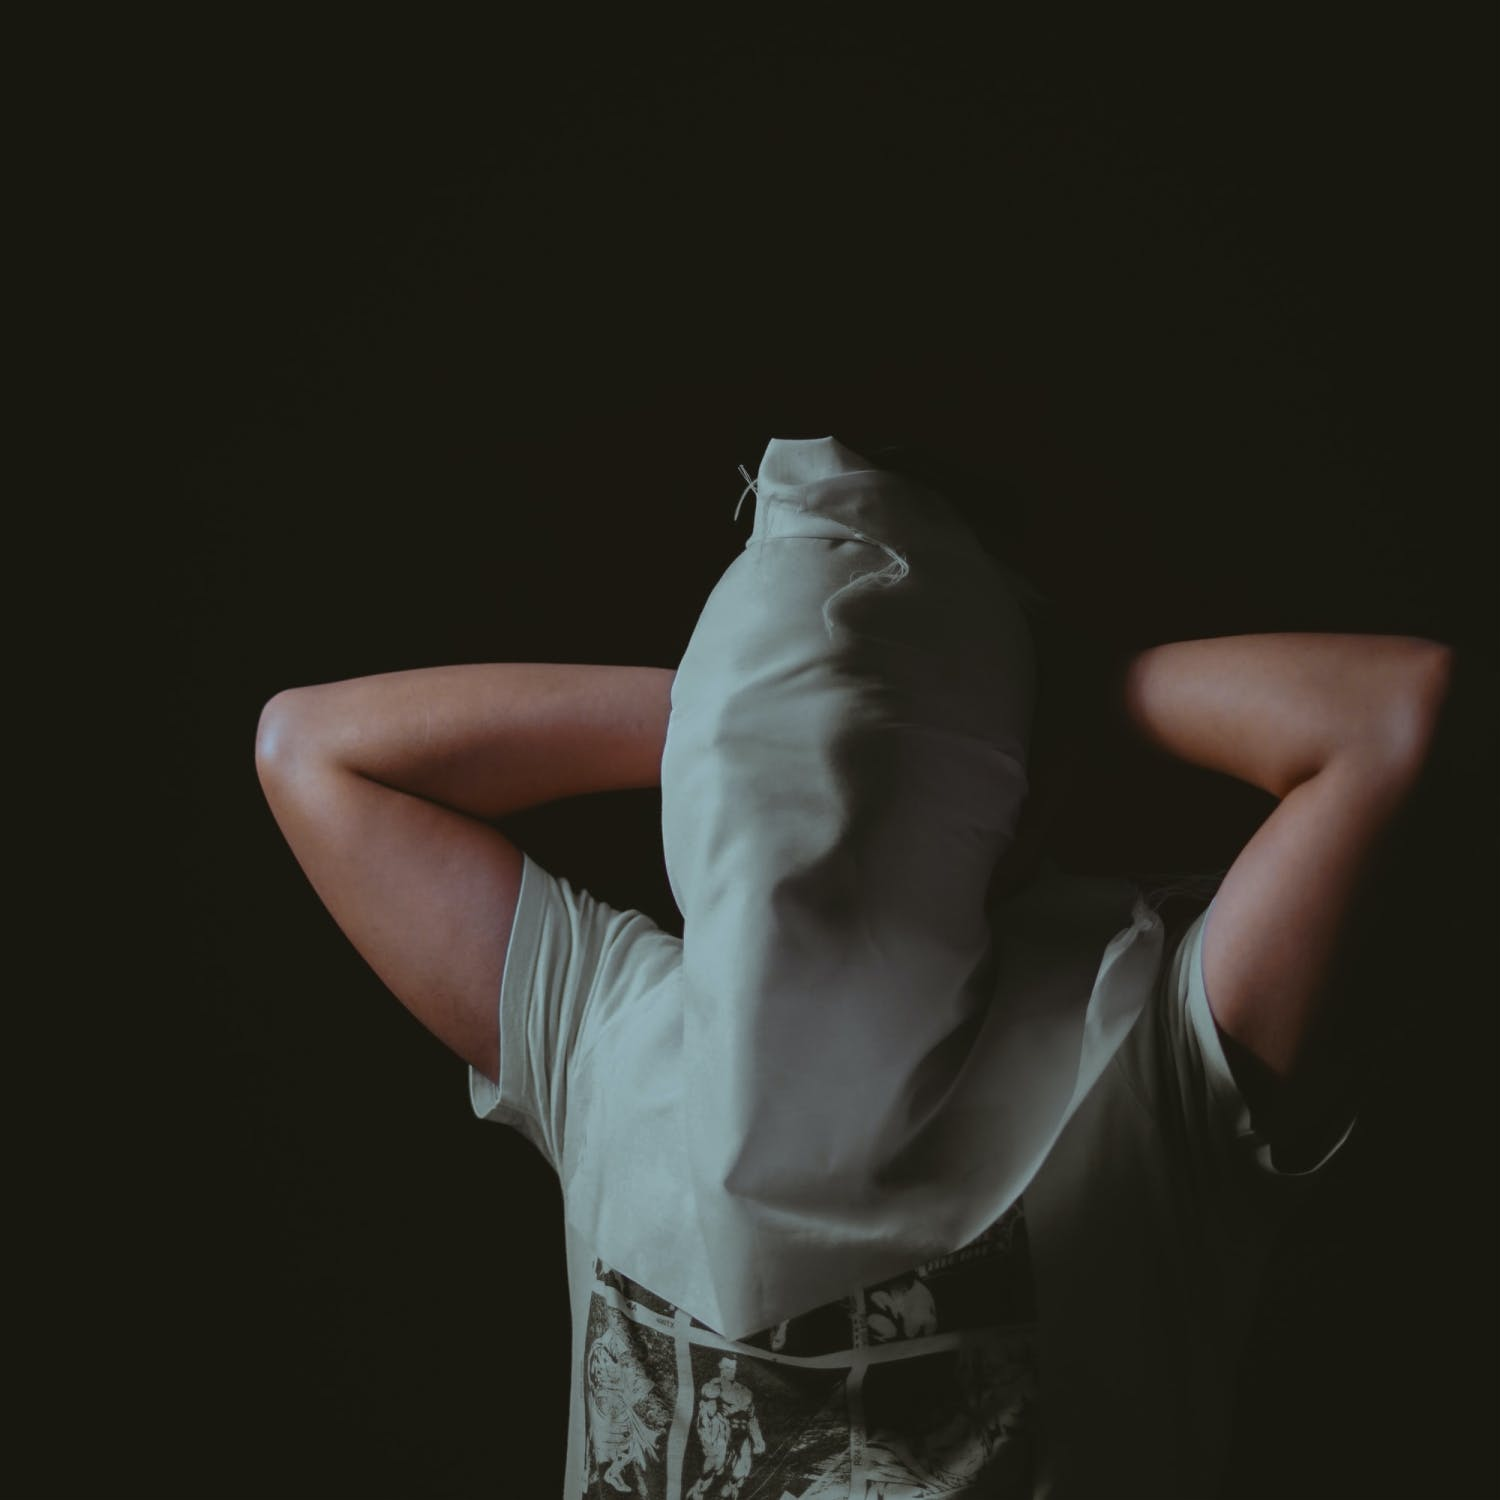 Man with waterboarding cloth over face